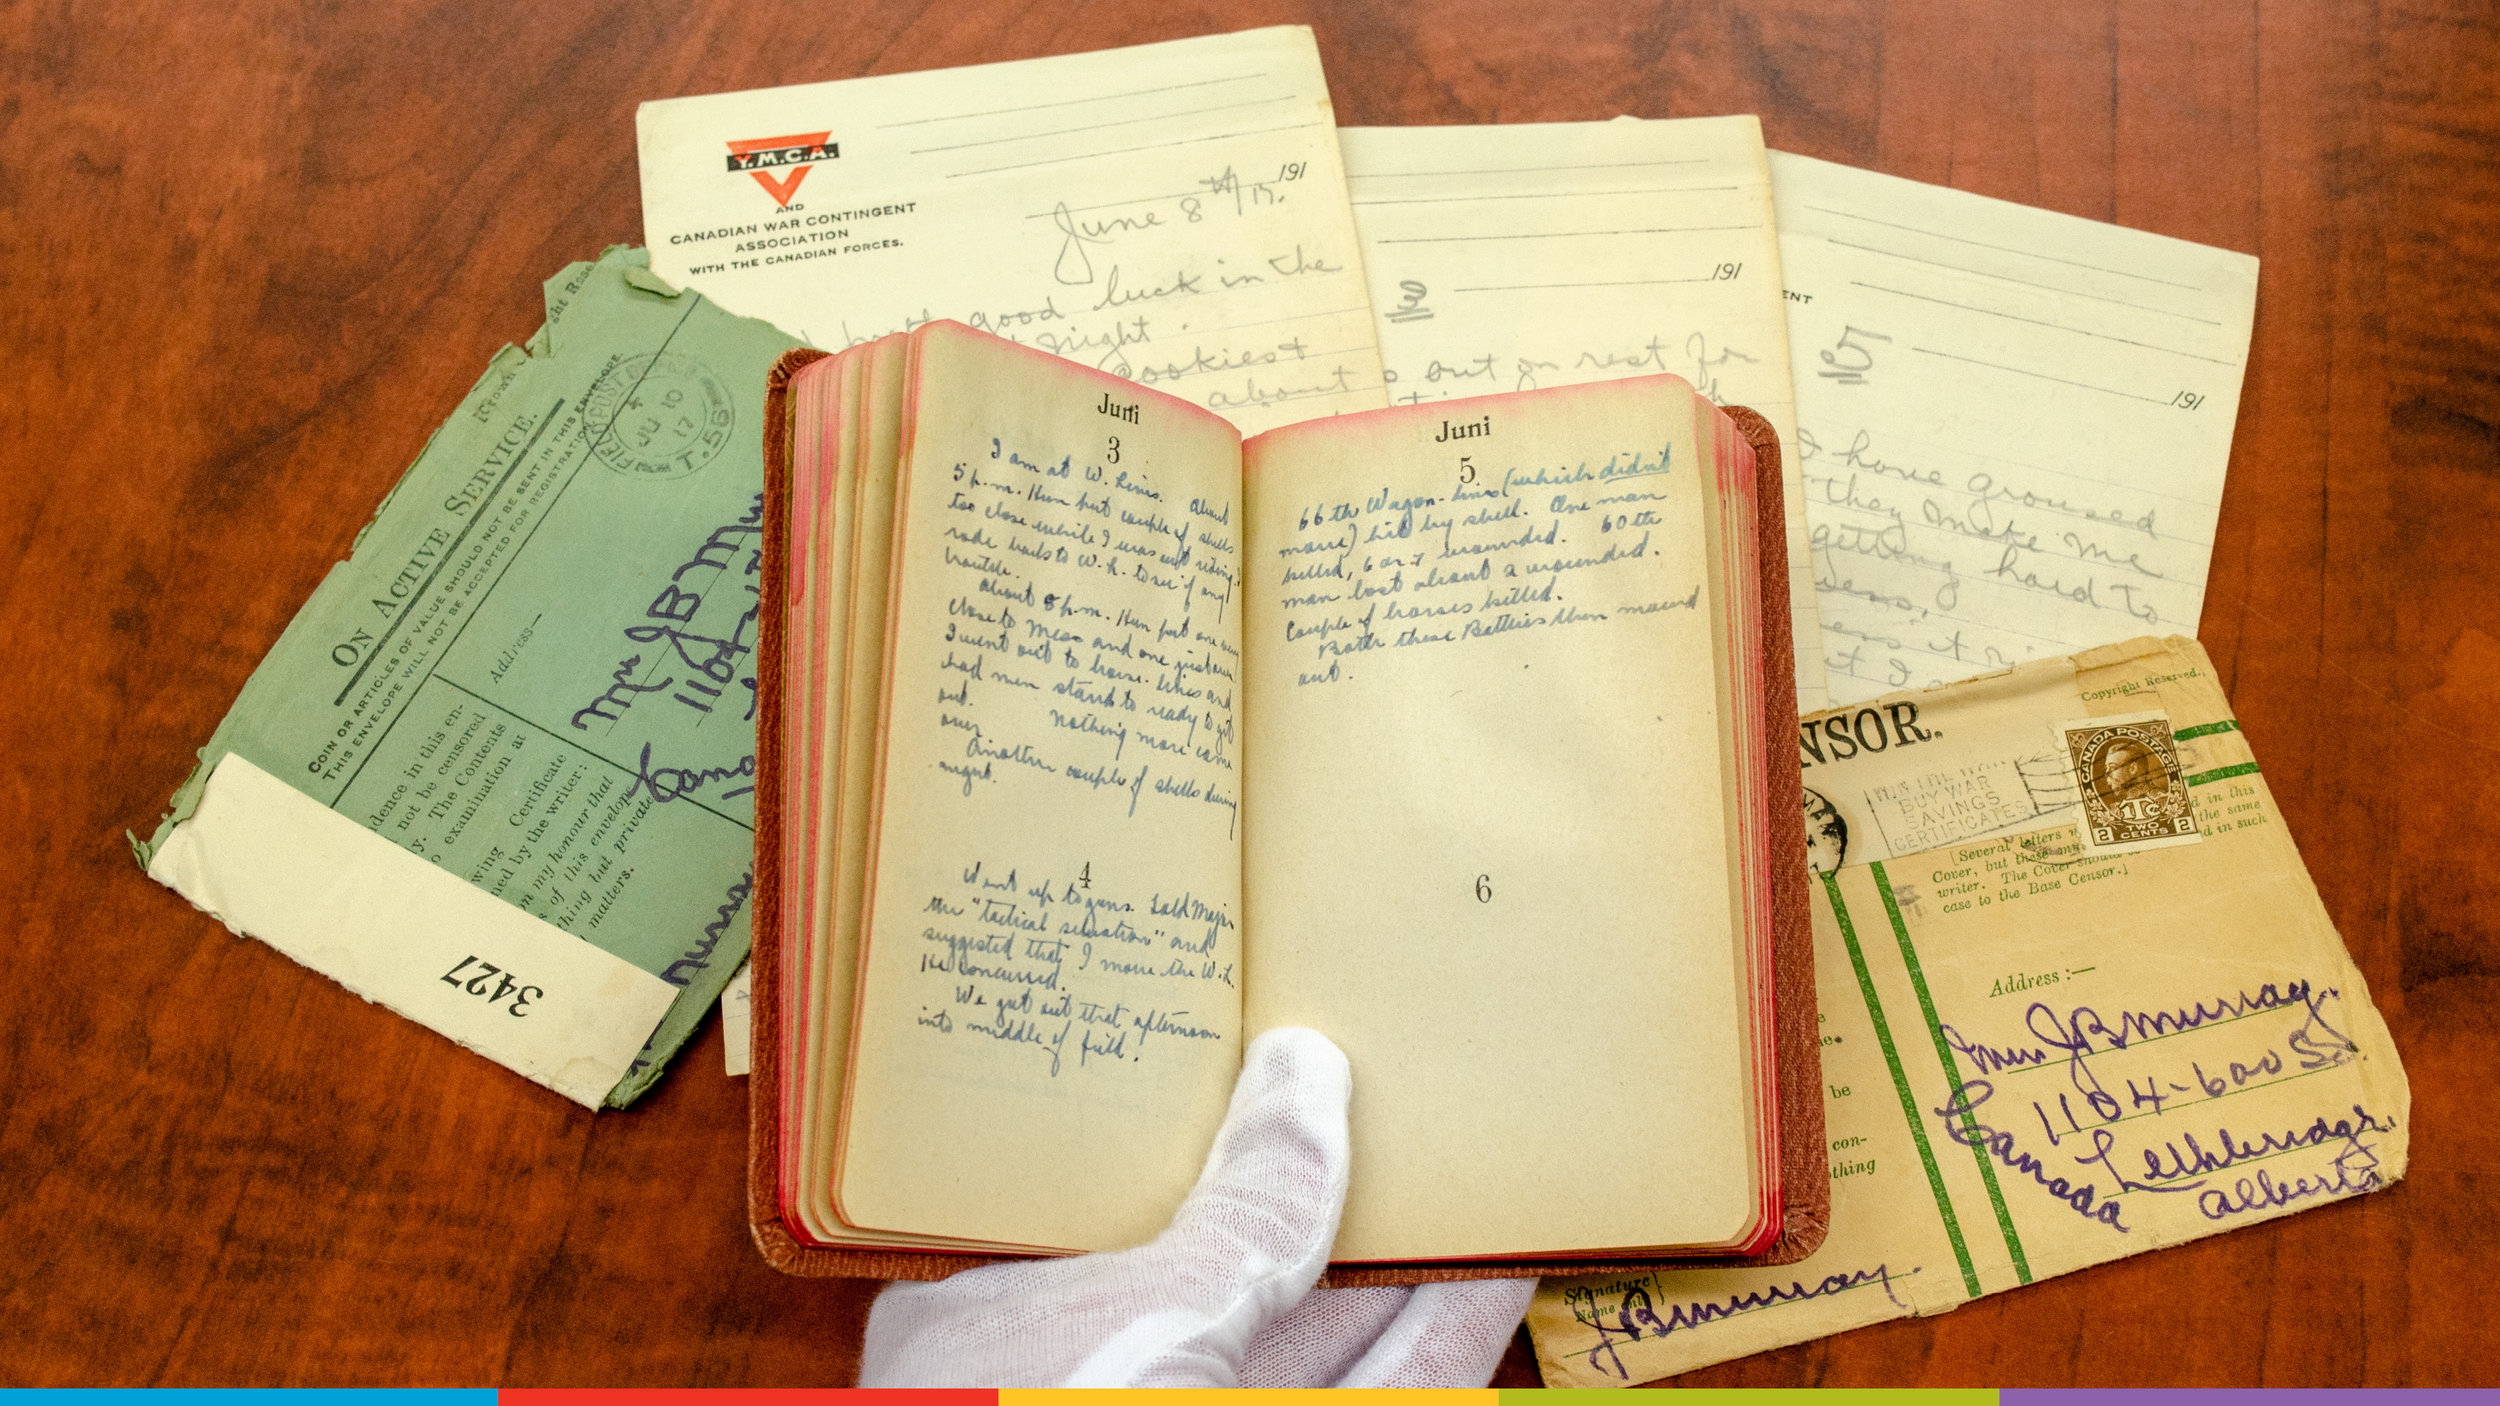 A photo of a gloved hand holding a journal from the Galt's Archives with other archival documents behind.